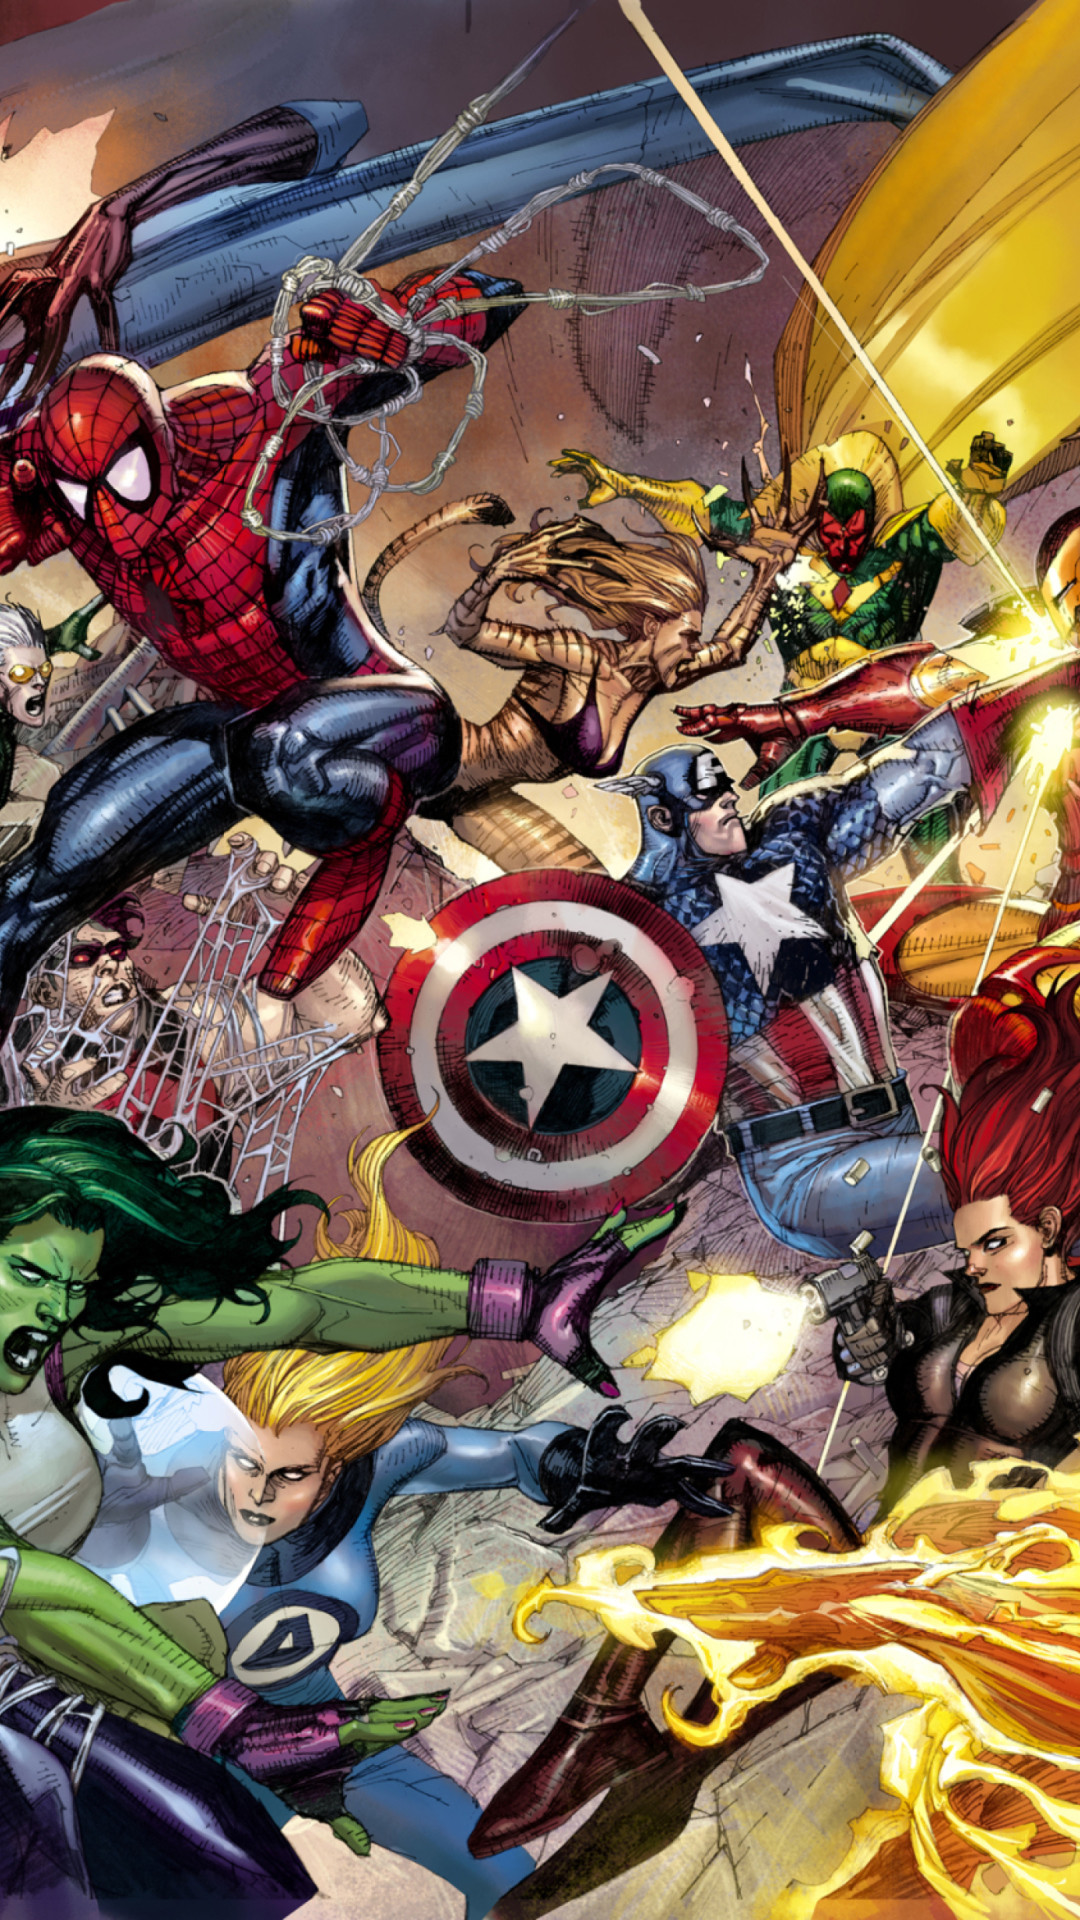 Iphone Marvel Wallpaper Hd 161472 Hd Wallpaper Backgrounds Download